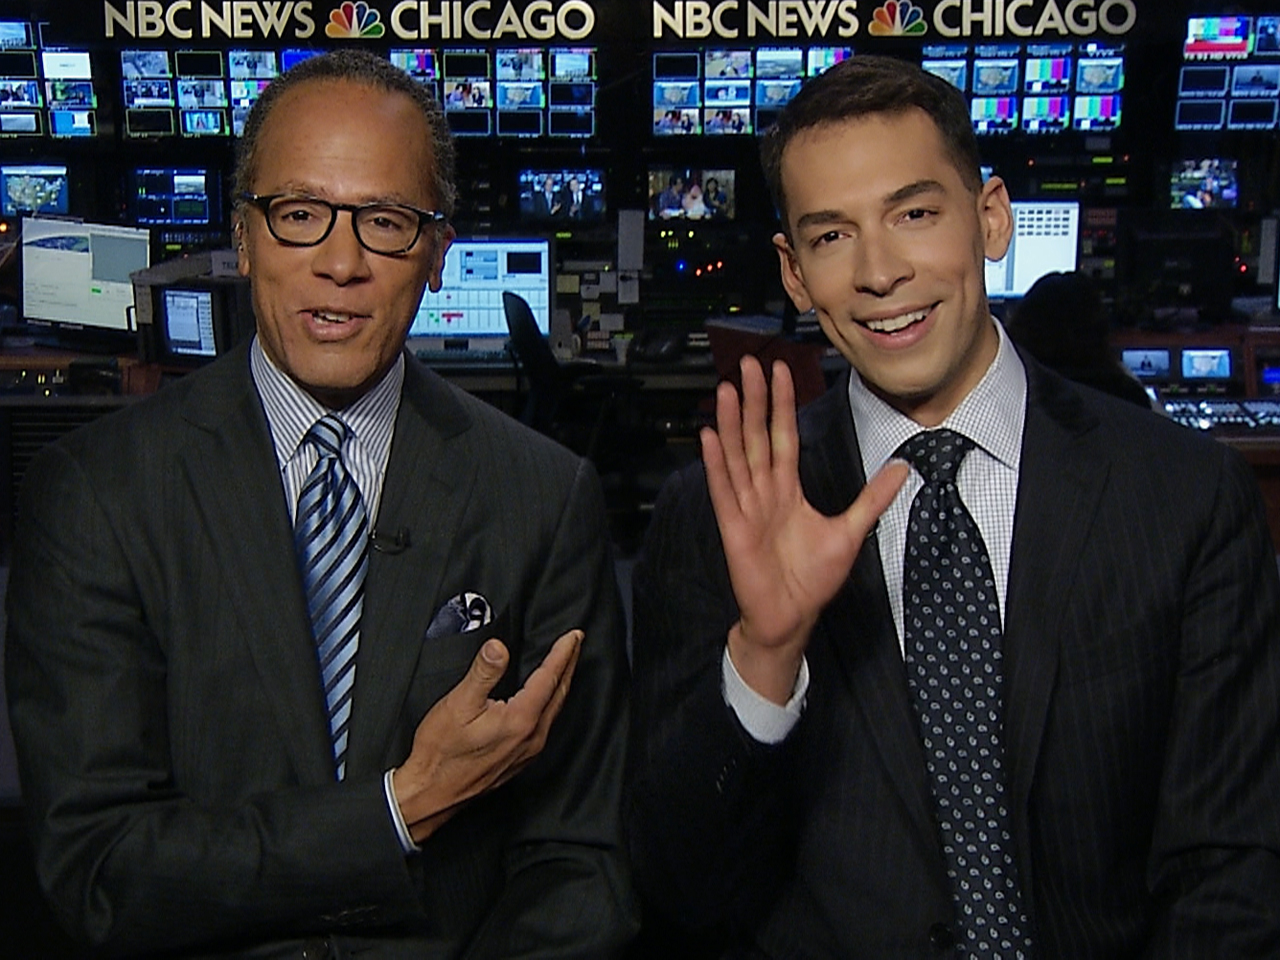 Lester Holt And Son Team Up To Anchor In Chicago